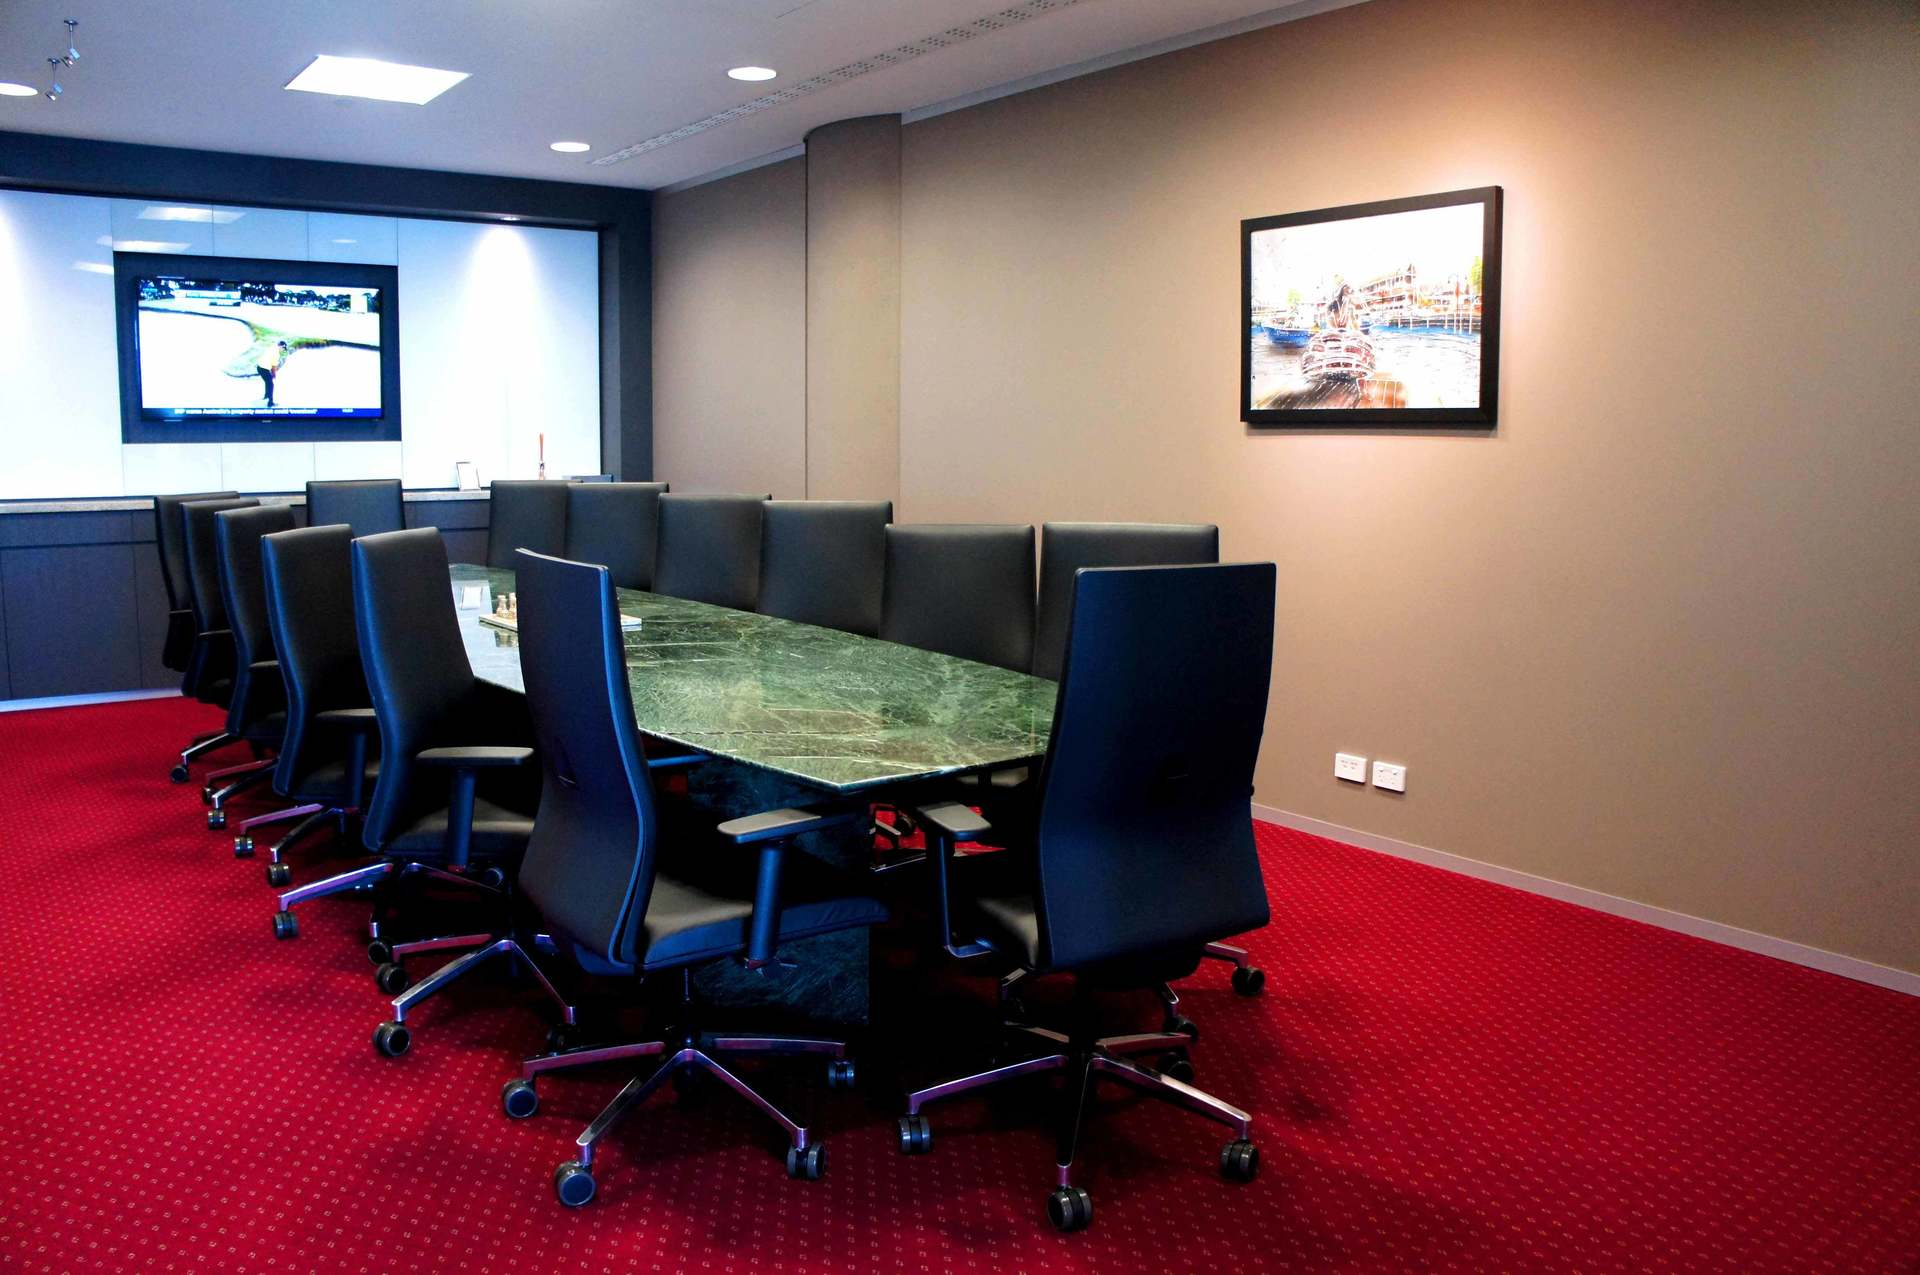 PREMIUM BUILDING OFFICES LOCATED IN THE MOST DYNAMIC LOCATIONS WITH AMAZING VIEWS